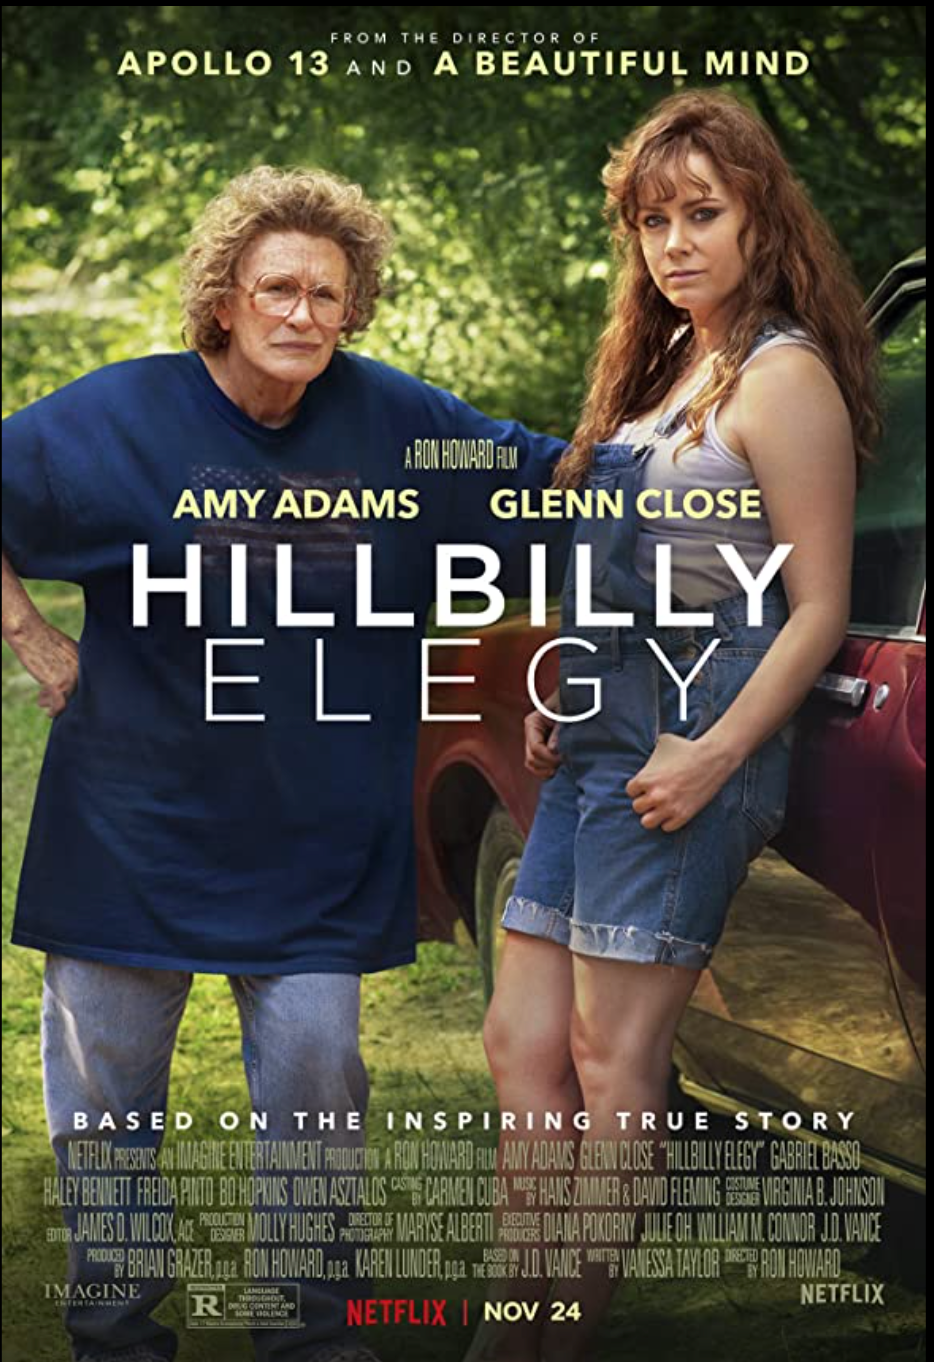 Poster showing main characters Bev Vance and Mamaw Vance played by Amy Adams and Glenn Close